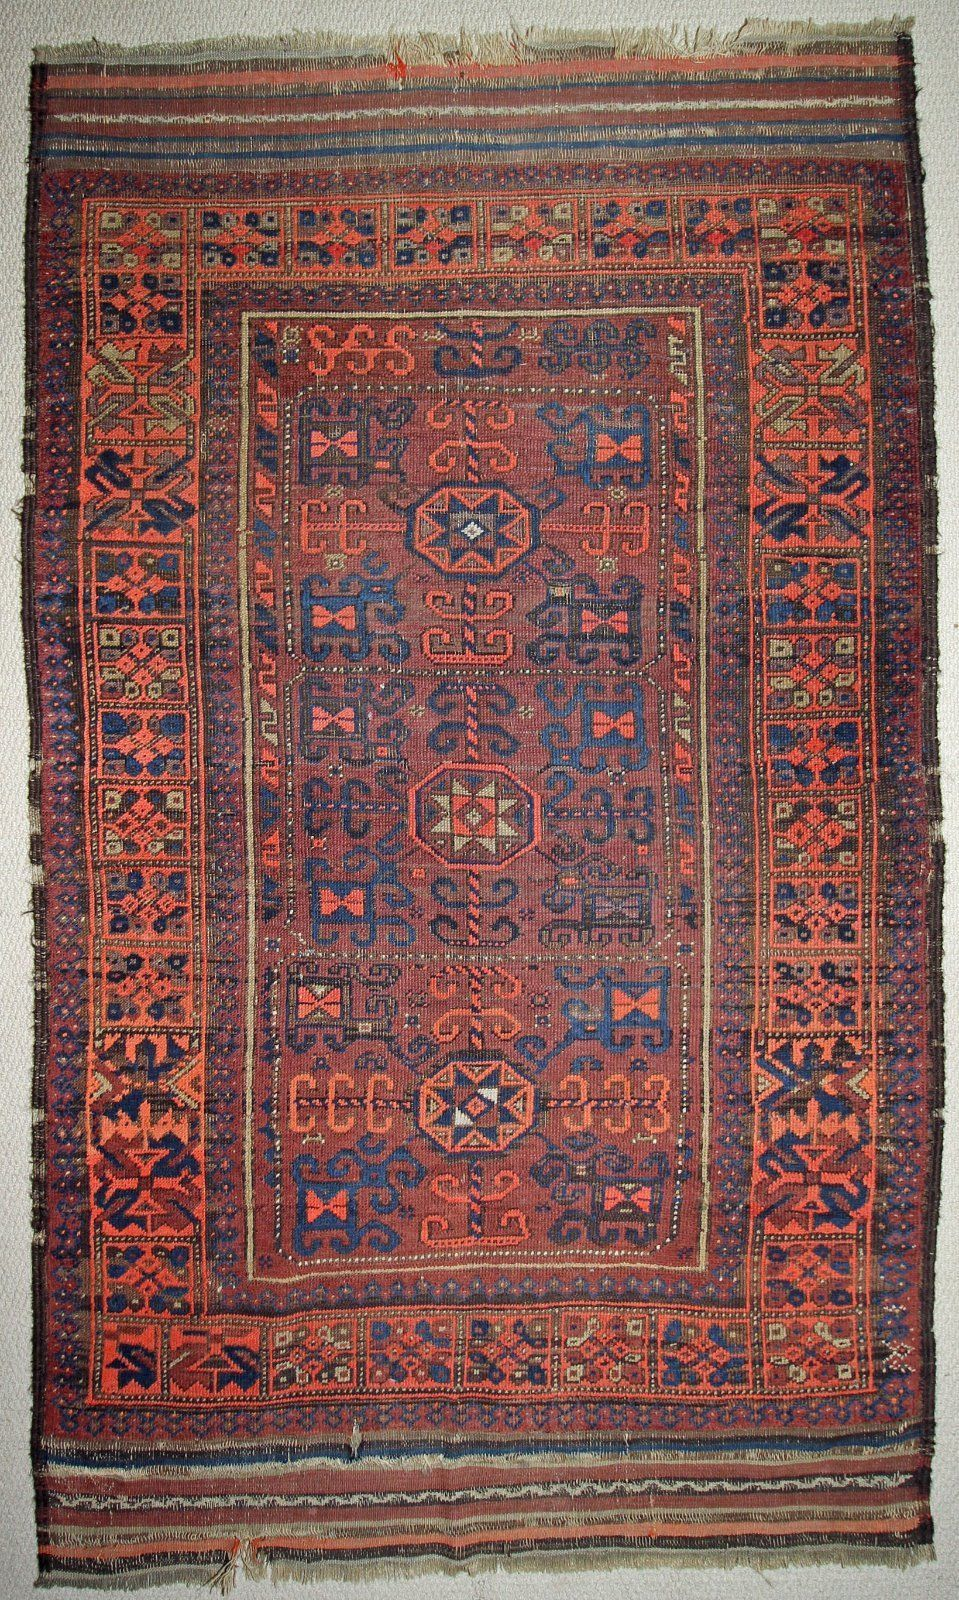 Antique Baluch Rug In Antiques, Rugs U0026 Carpets, Small (3x5 And Smaller)